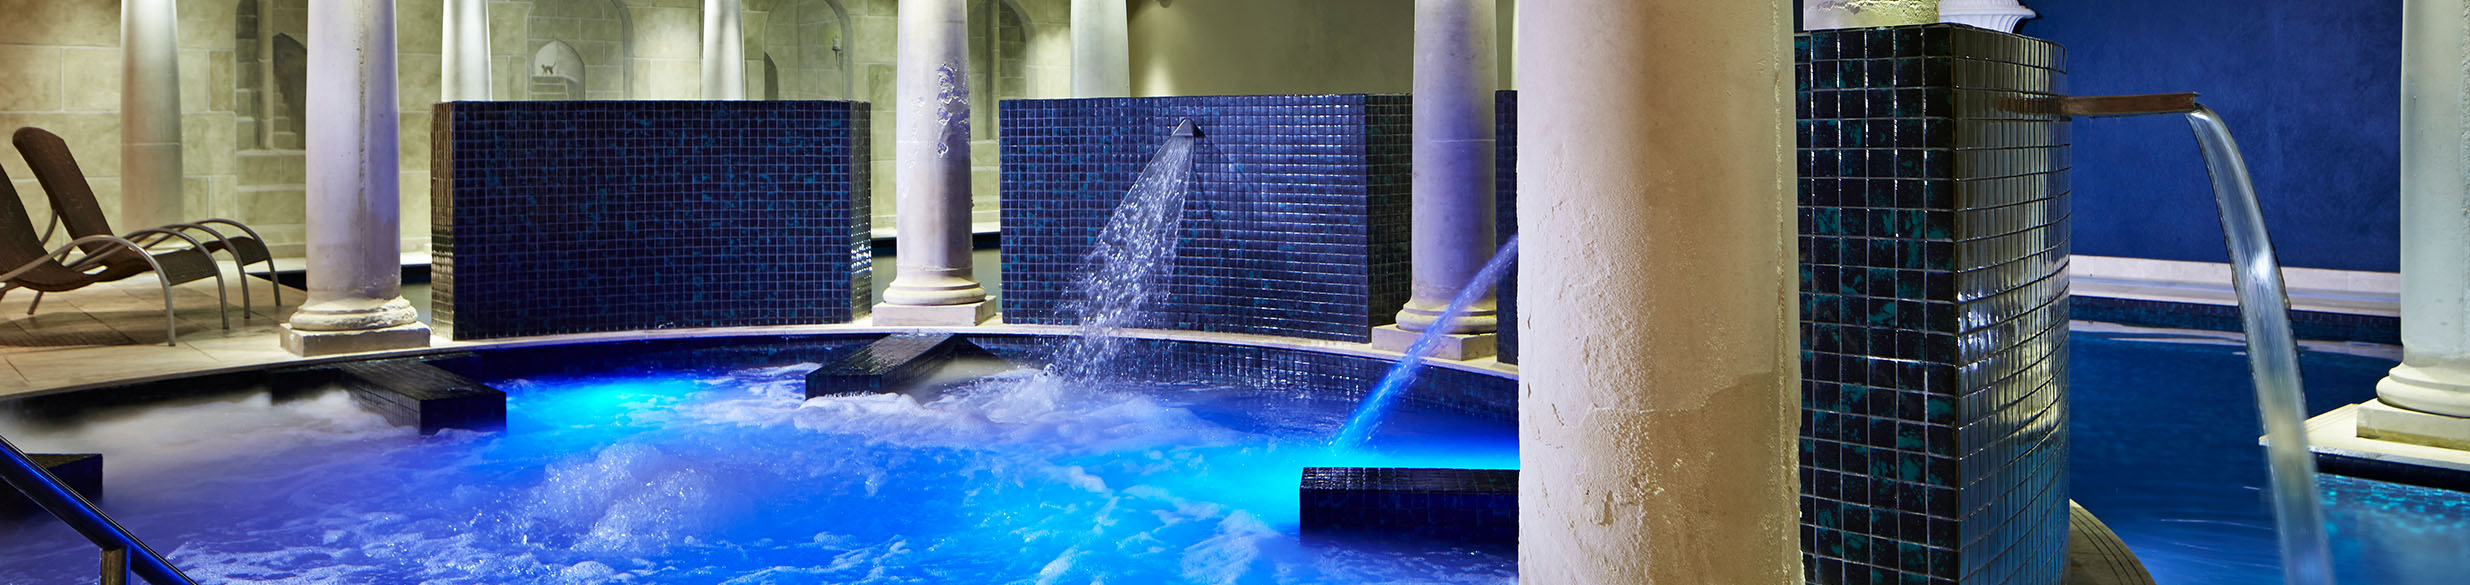 Spa Brands Utopia Spas Signature Experiences Renew Refresh